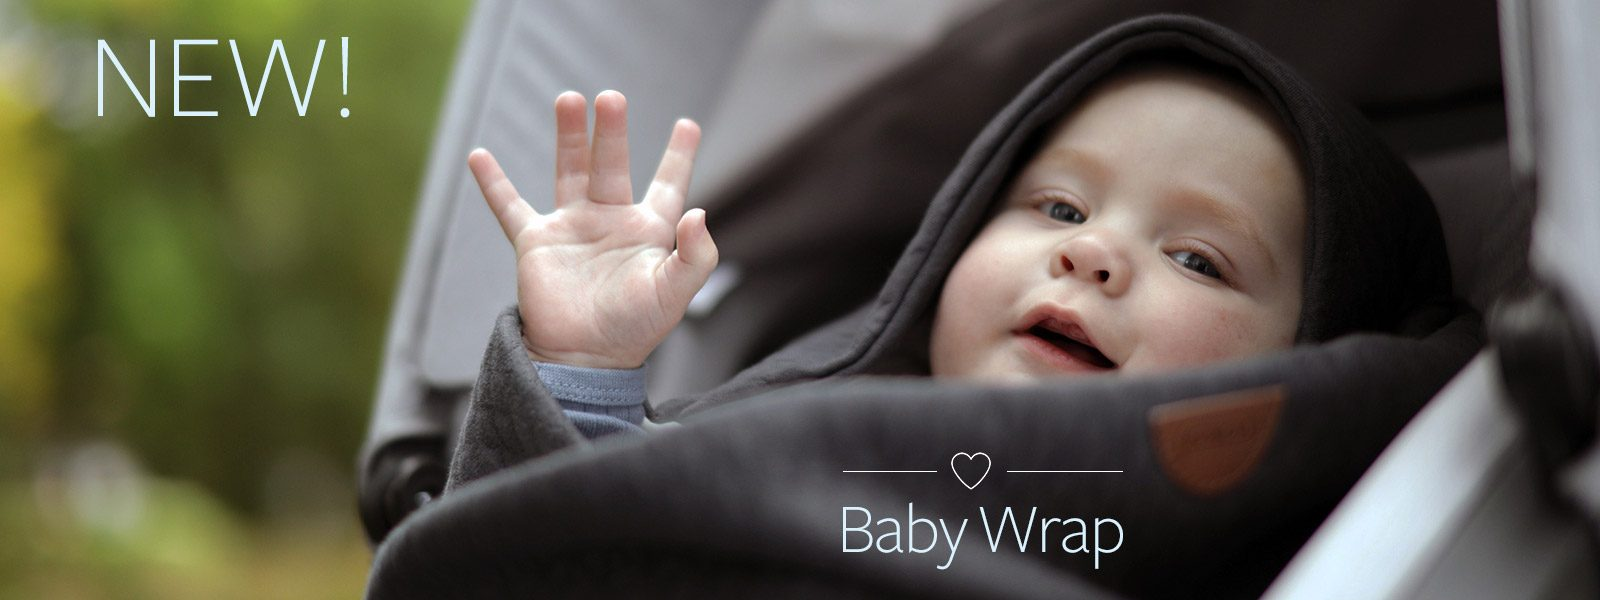 Voksi Baby Wrap Baby Blanket For Your Child S Safety